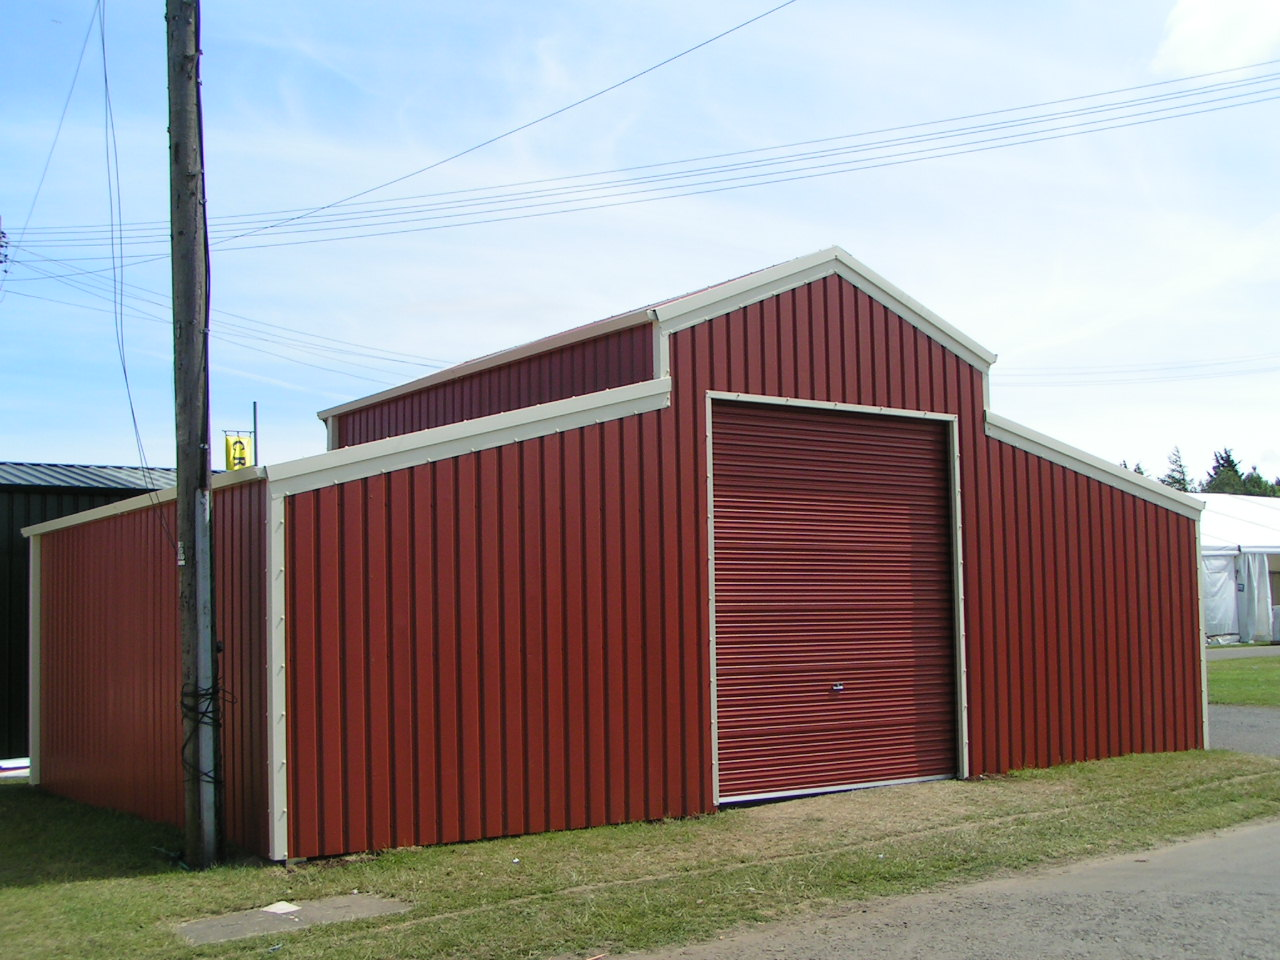 Prefabricated buildings an outlook at prefabricated for Prefab units